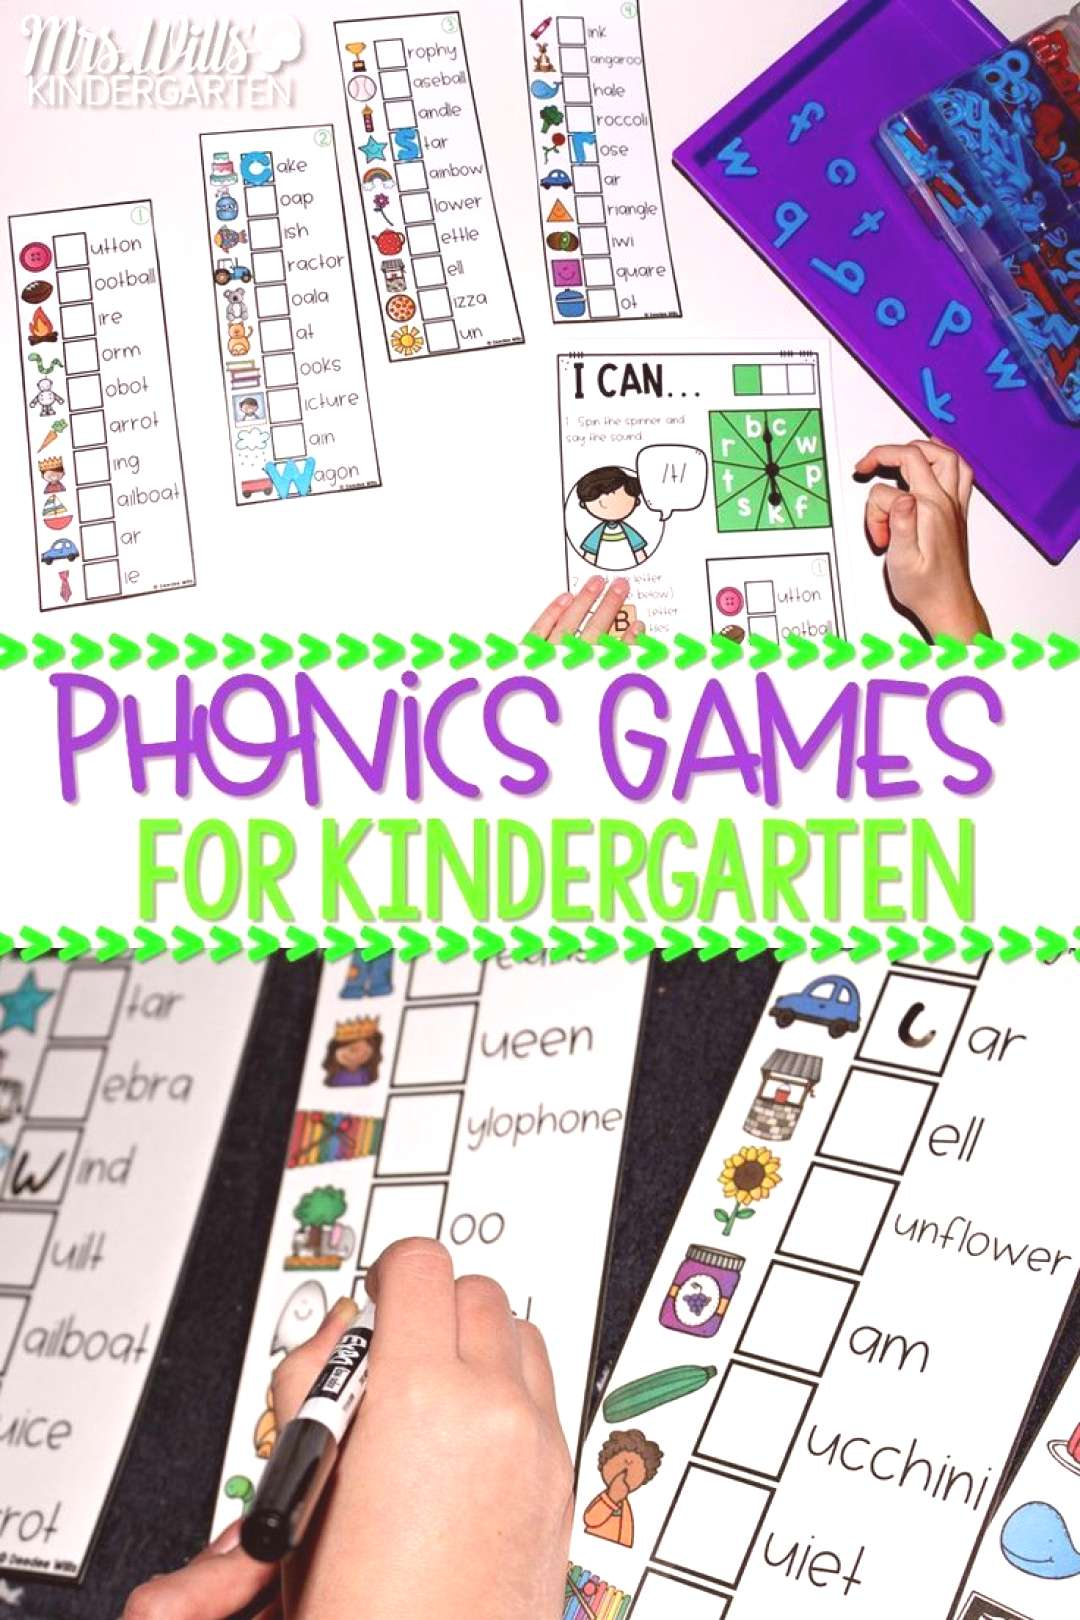 Fun Classroom Phonics Games to Support Kindergarten Literacy Fun Classroom Phonics Games to Support